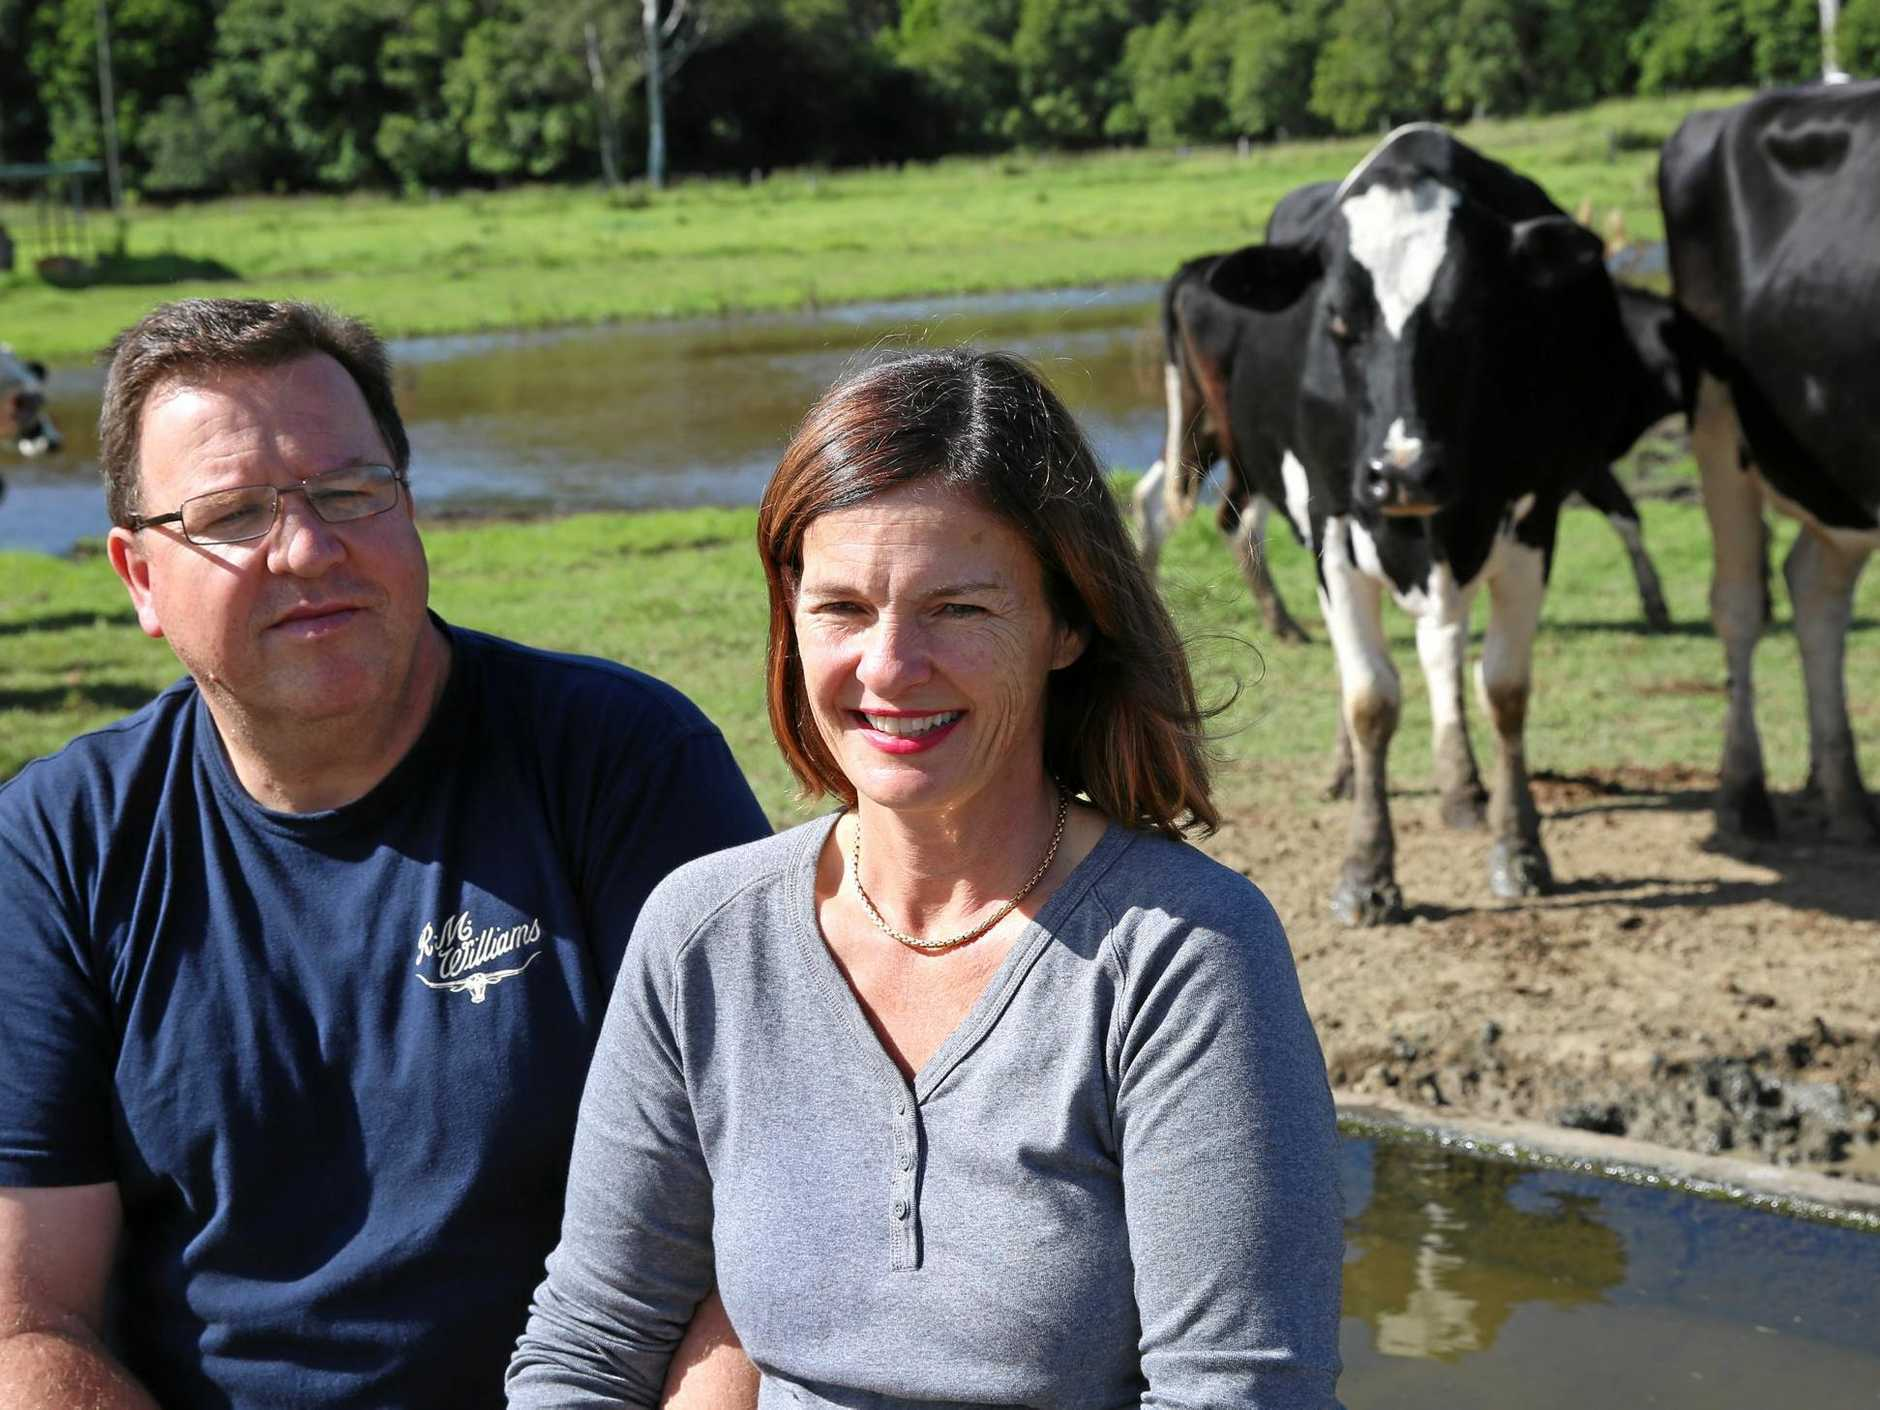 Markus and Sara Bucher opened Maleny Cheese 14 years ago and say they are passionate about farm safety.